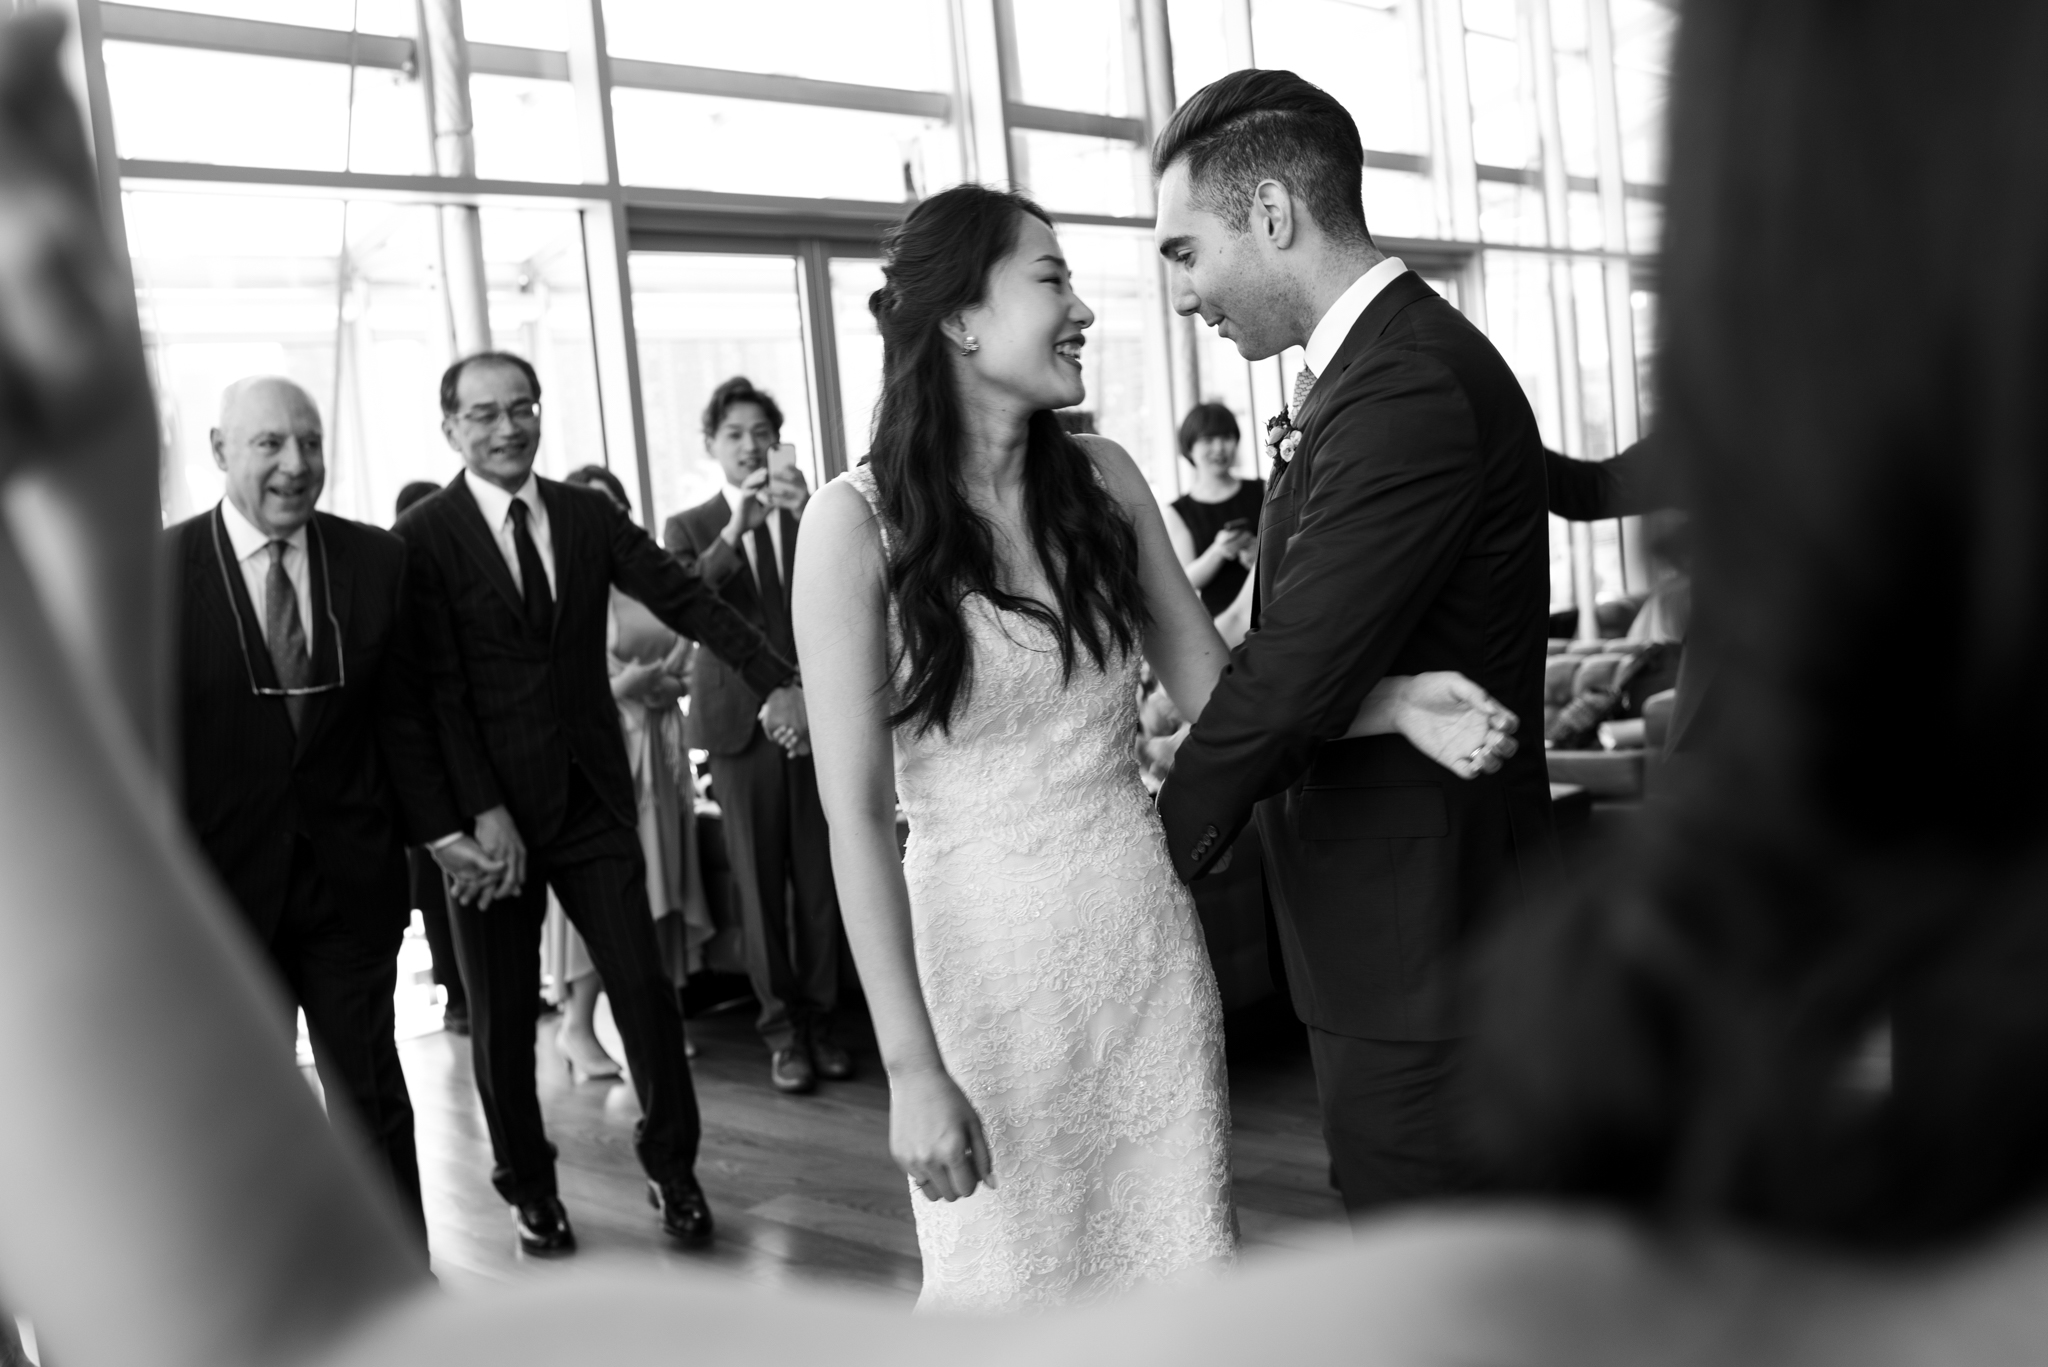 Saki & Zach's Wedding by Romina Hendlin-013.jpg